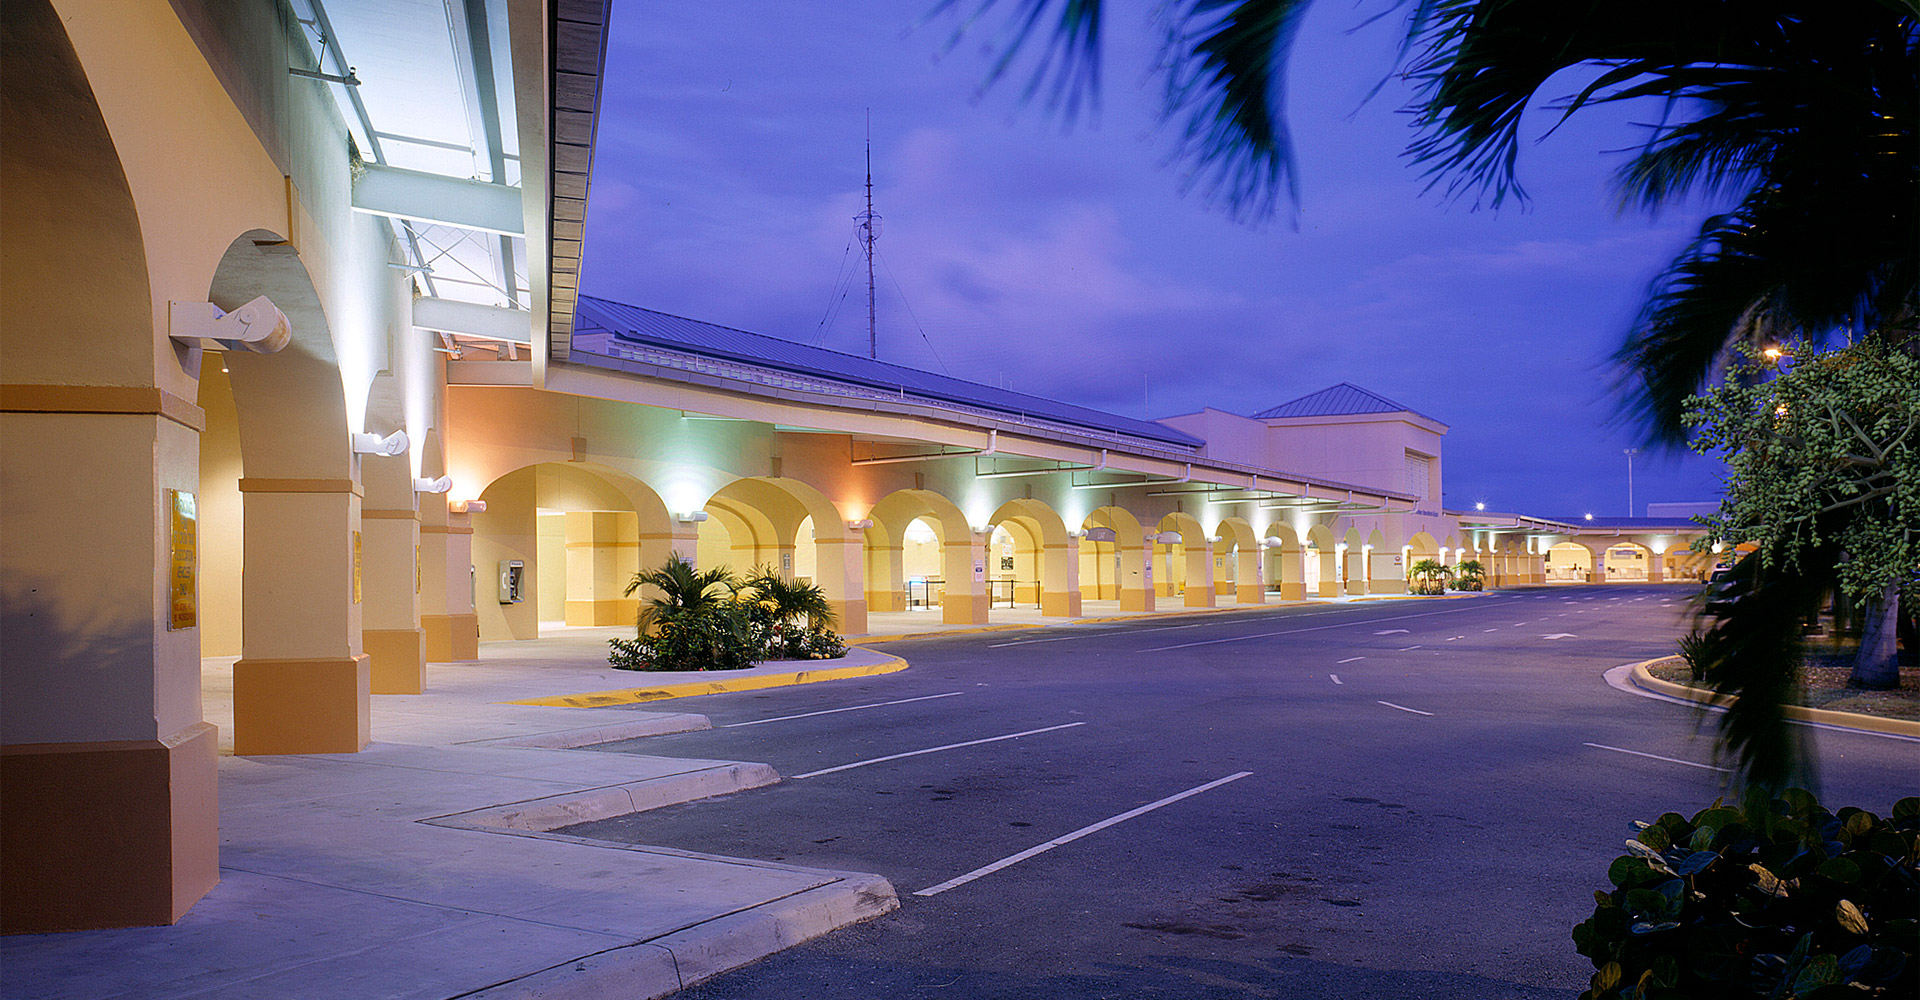 Virgin Islands Port Authority.